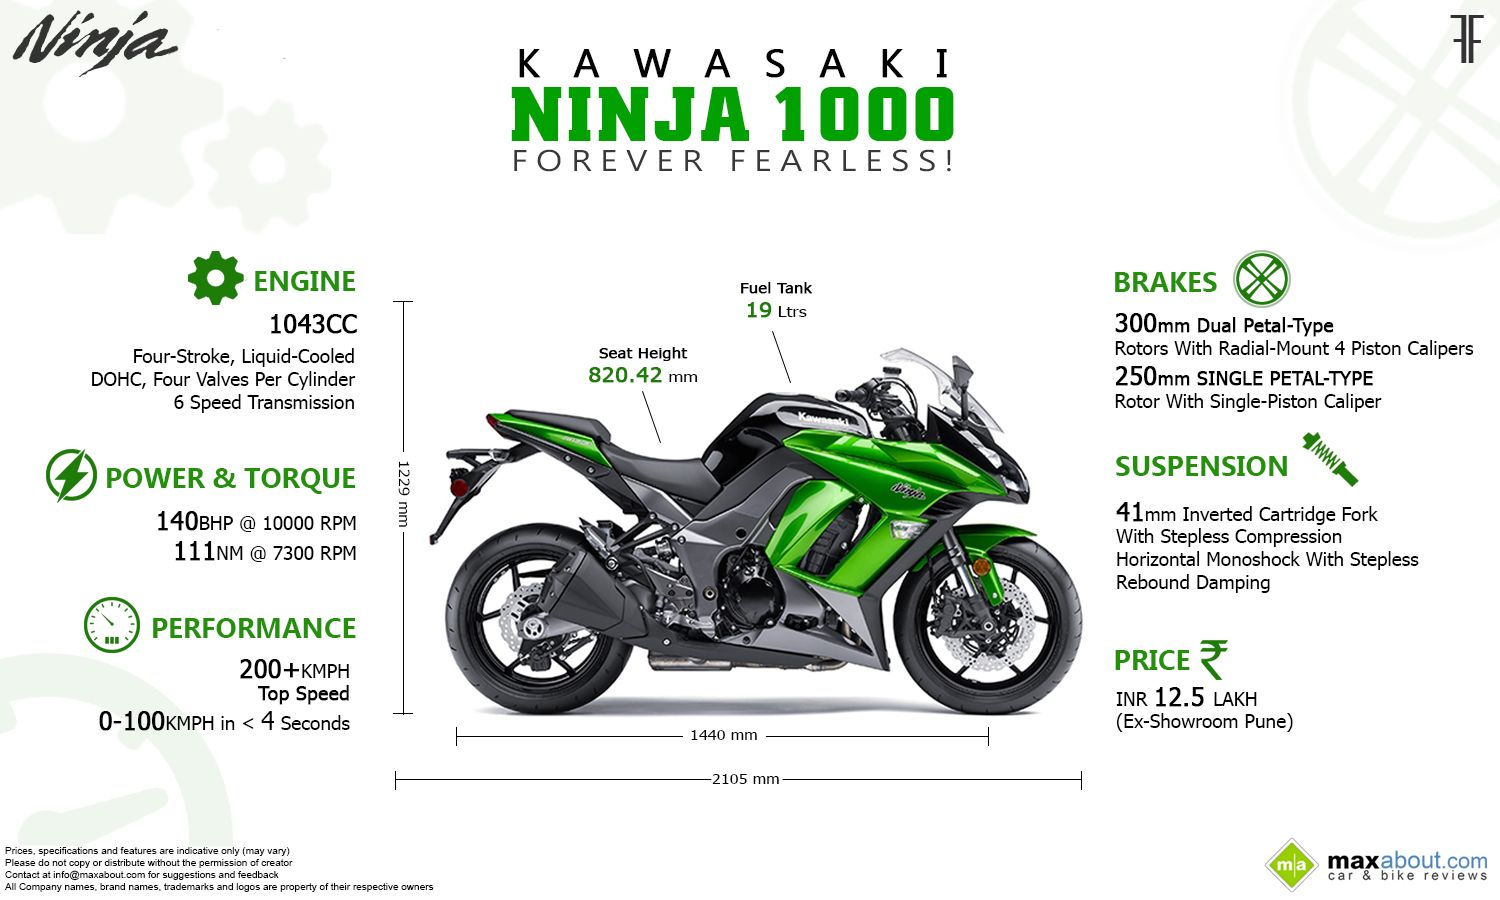 2014 kawasaki ninja 1000 specifications and price maxabout autos 2014 kawasaki ninja 1000 specifications and price fandeluxe Images